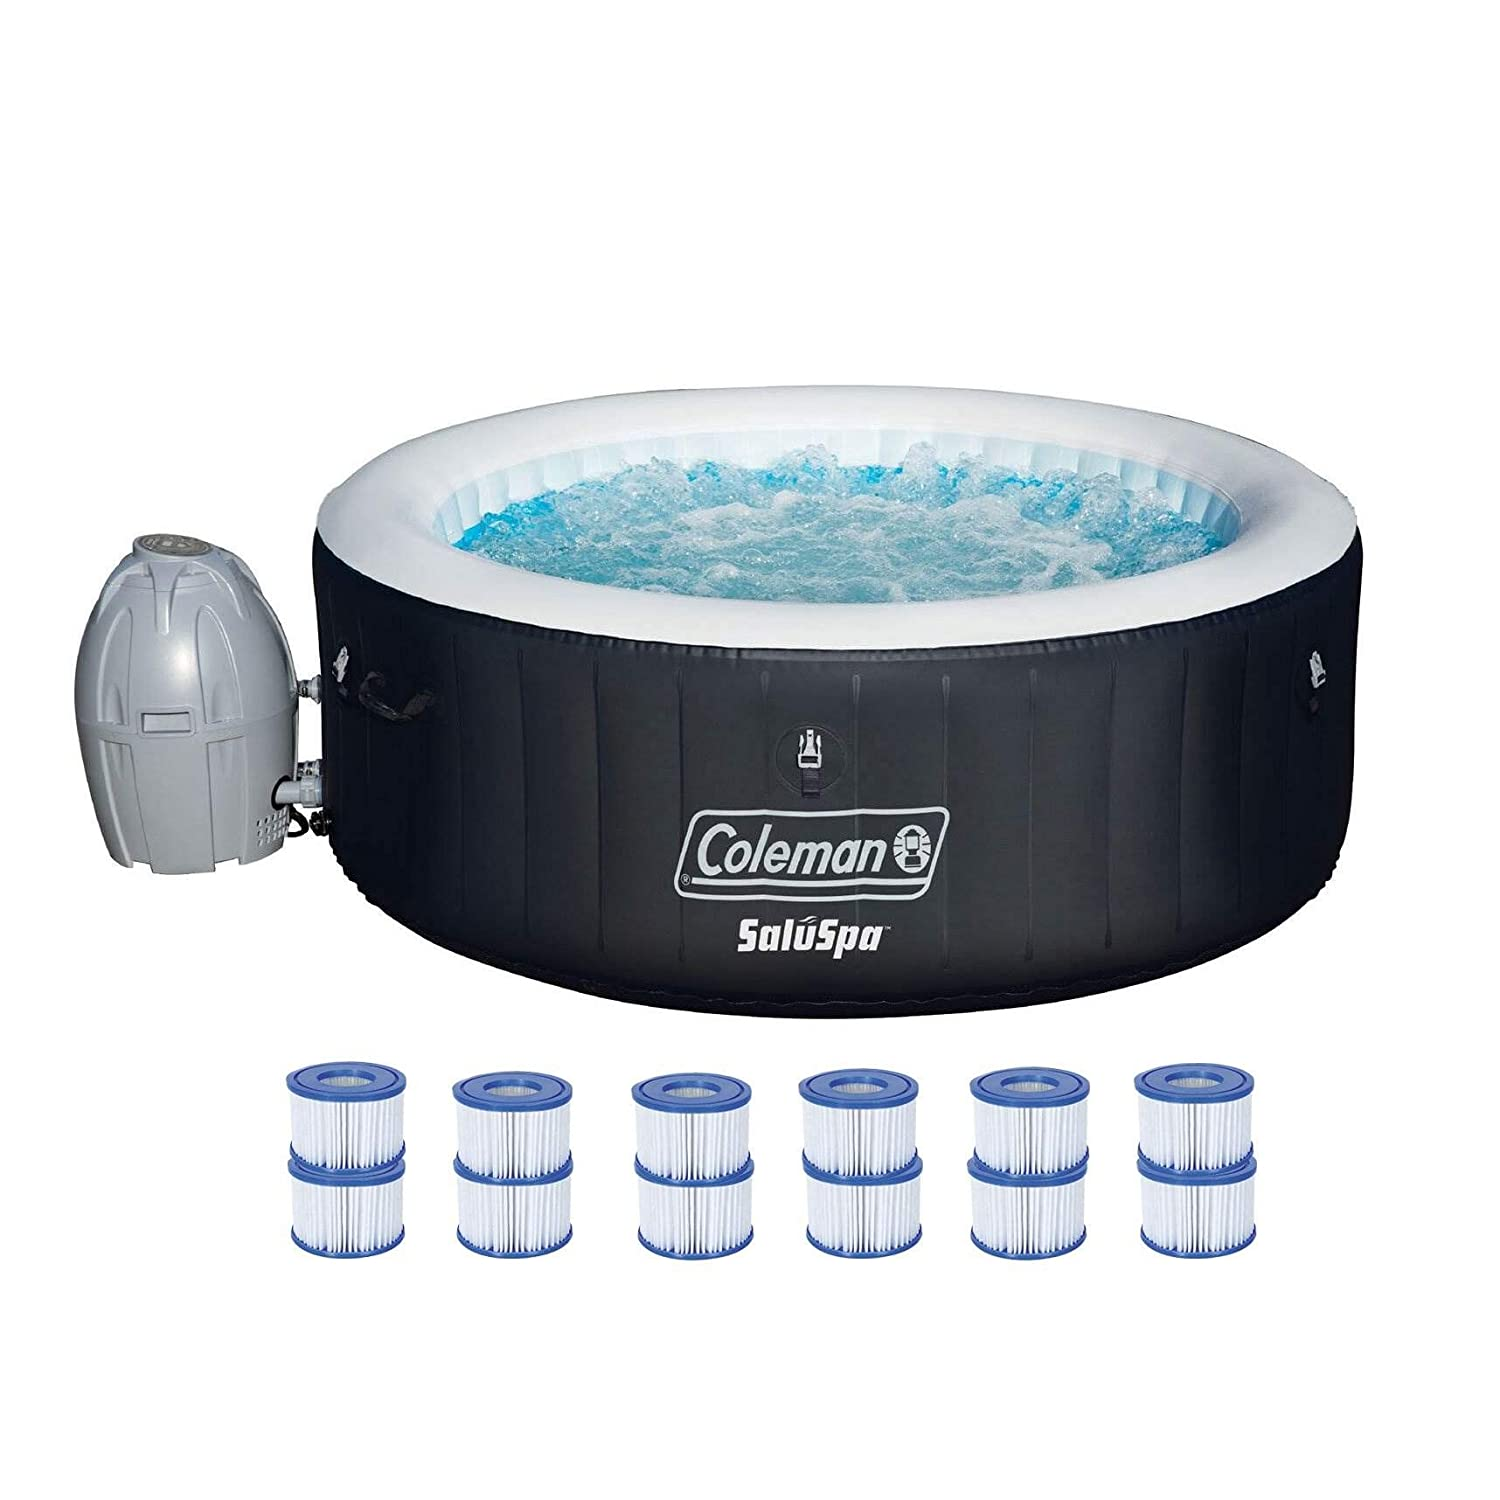 Coleman Hot Tub with 6 Cartridges